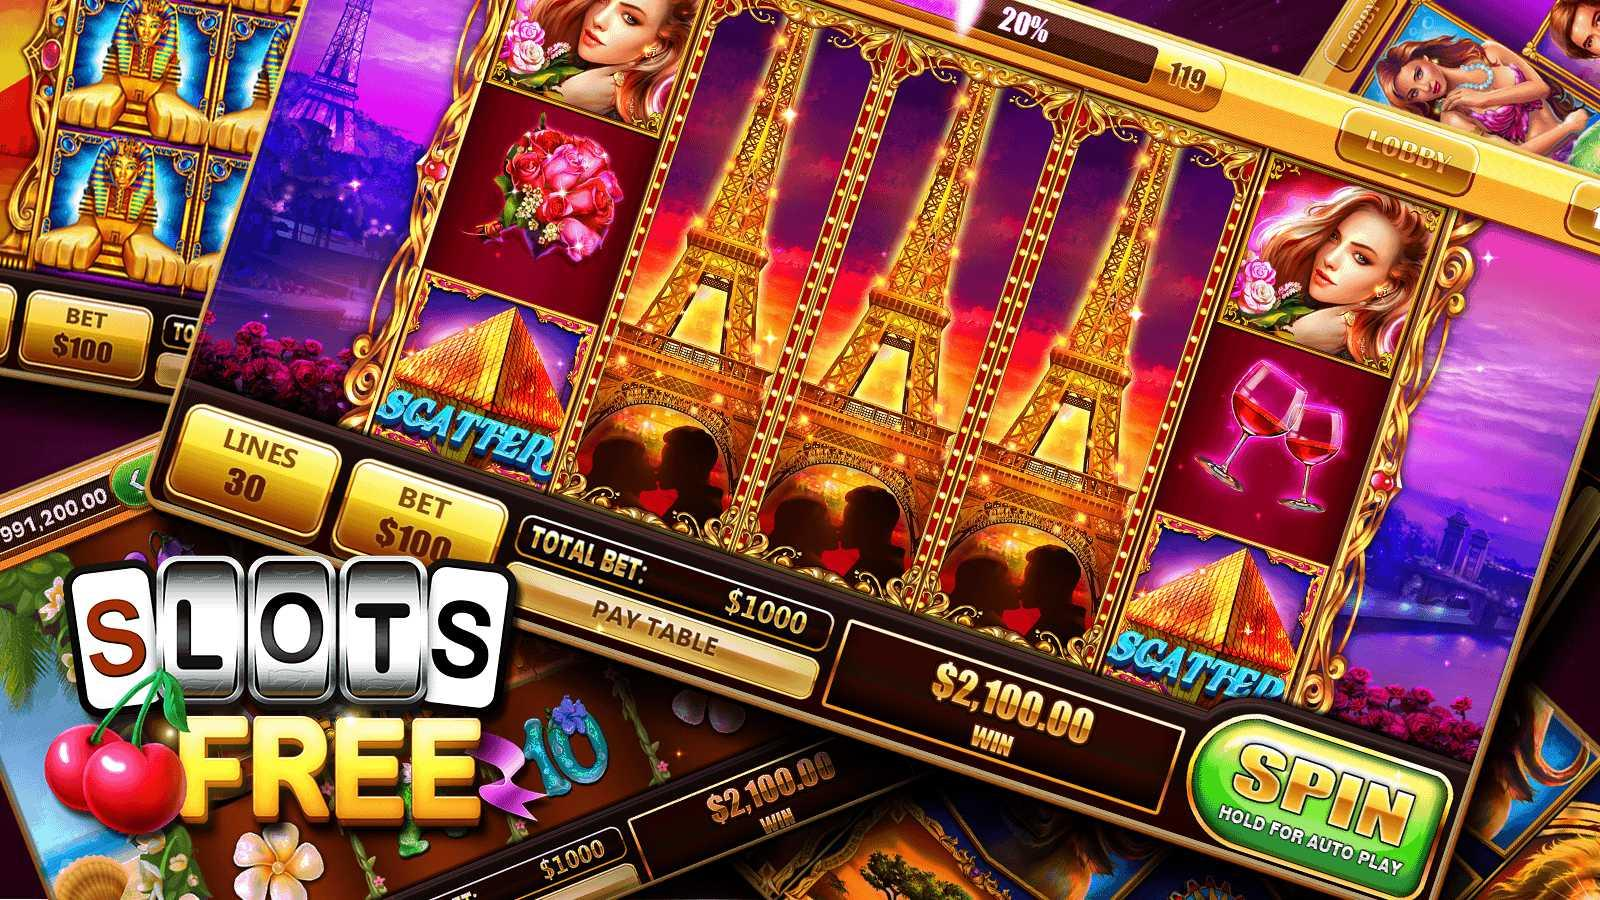 Vegas slot machines free online